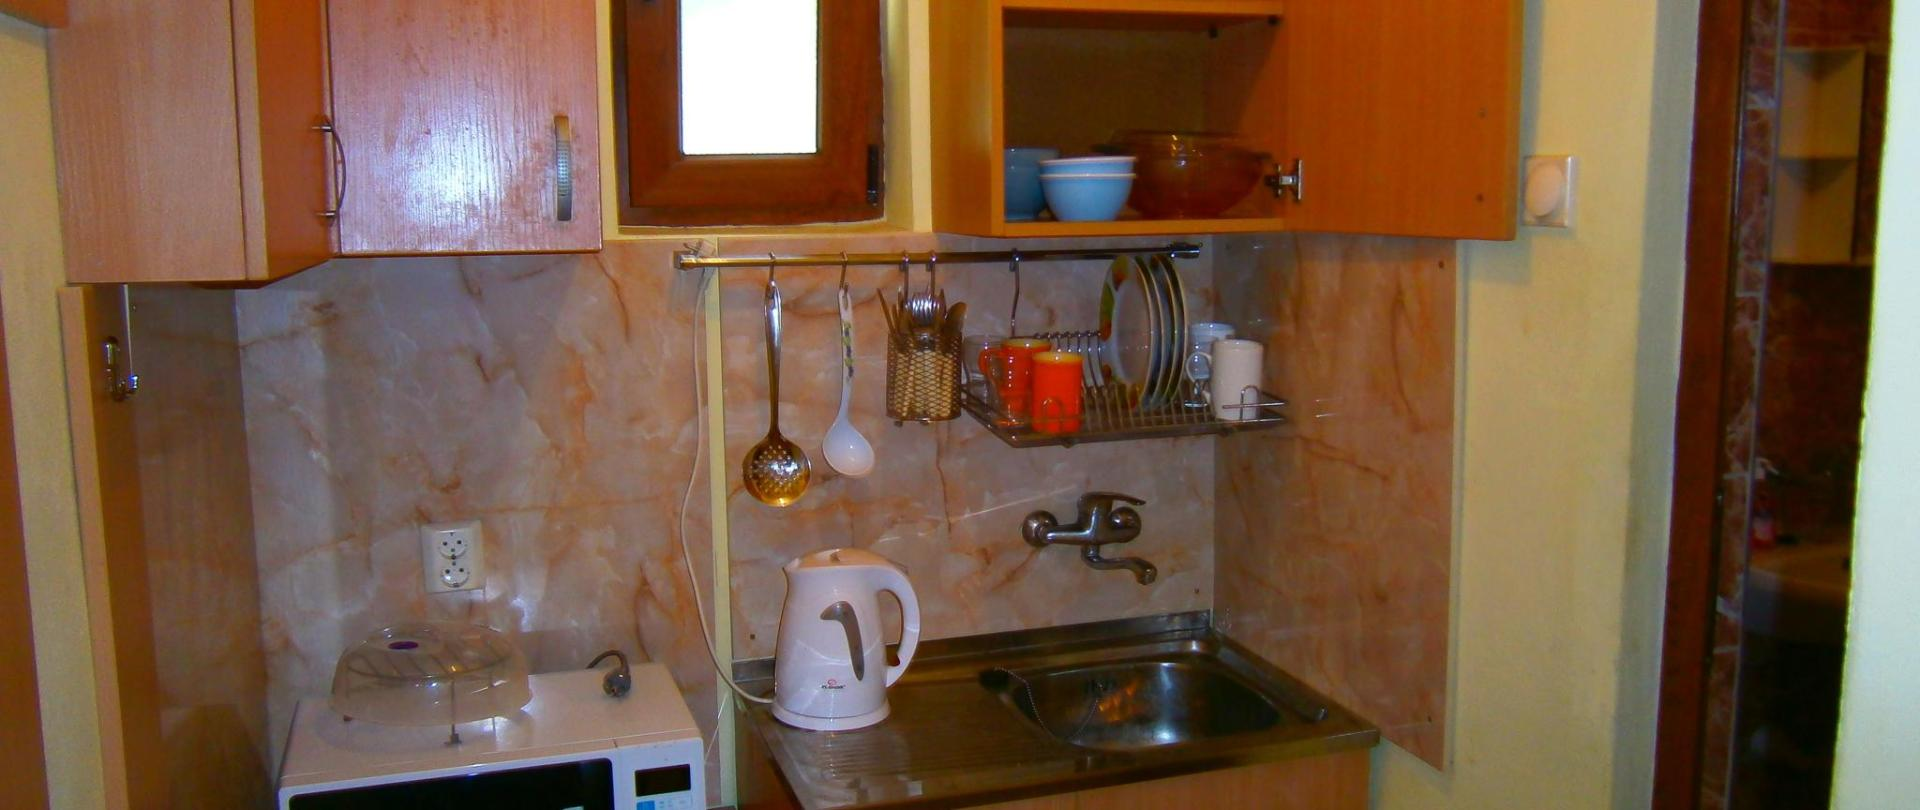 kitchen kitchen suite